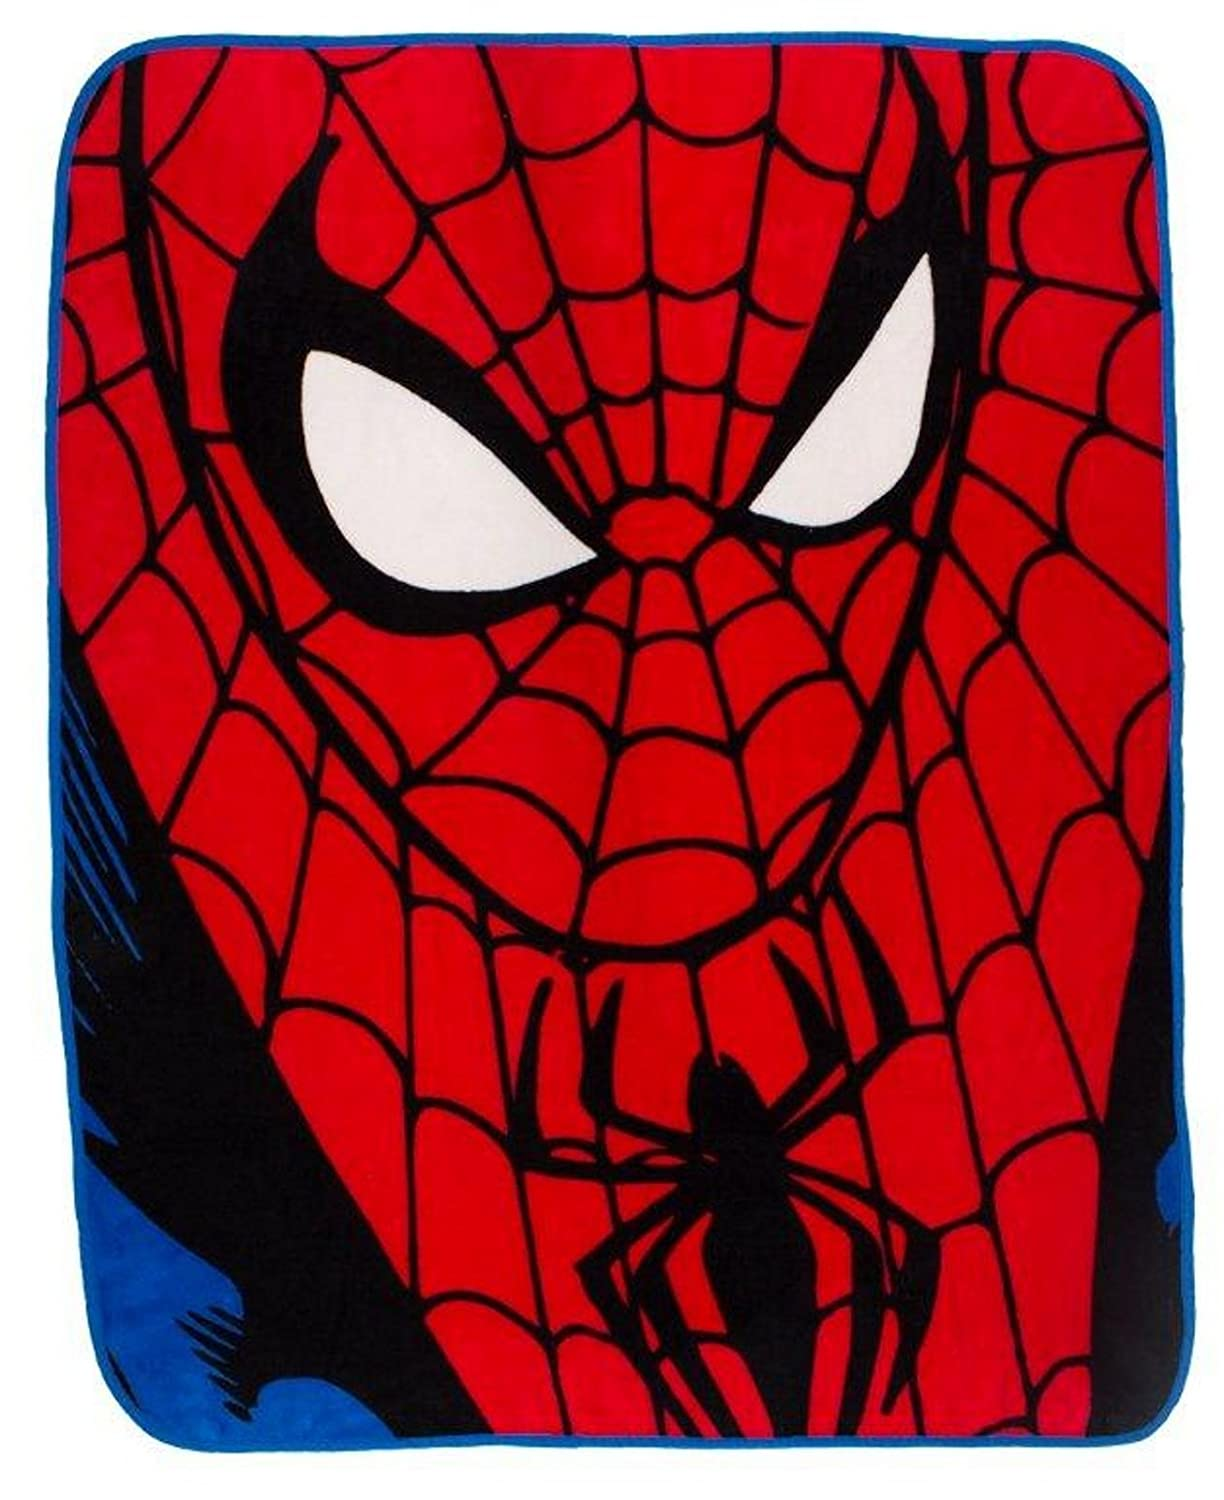 Spiderman Blanket (120x150cm)